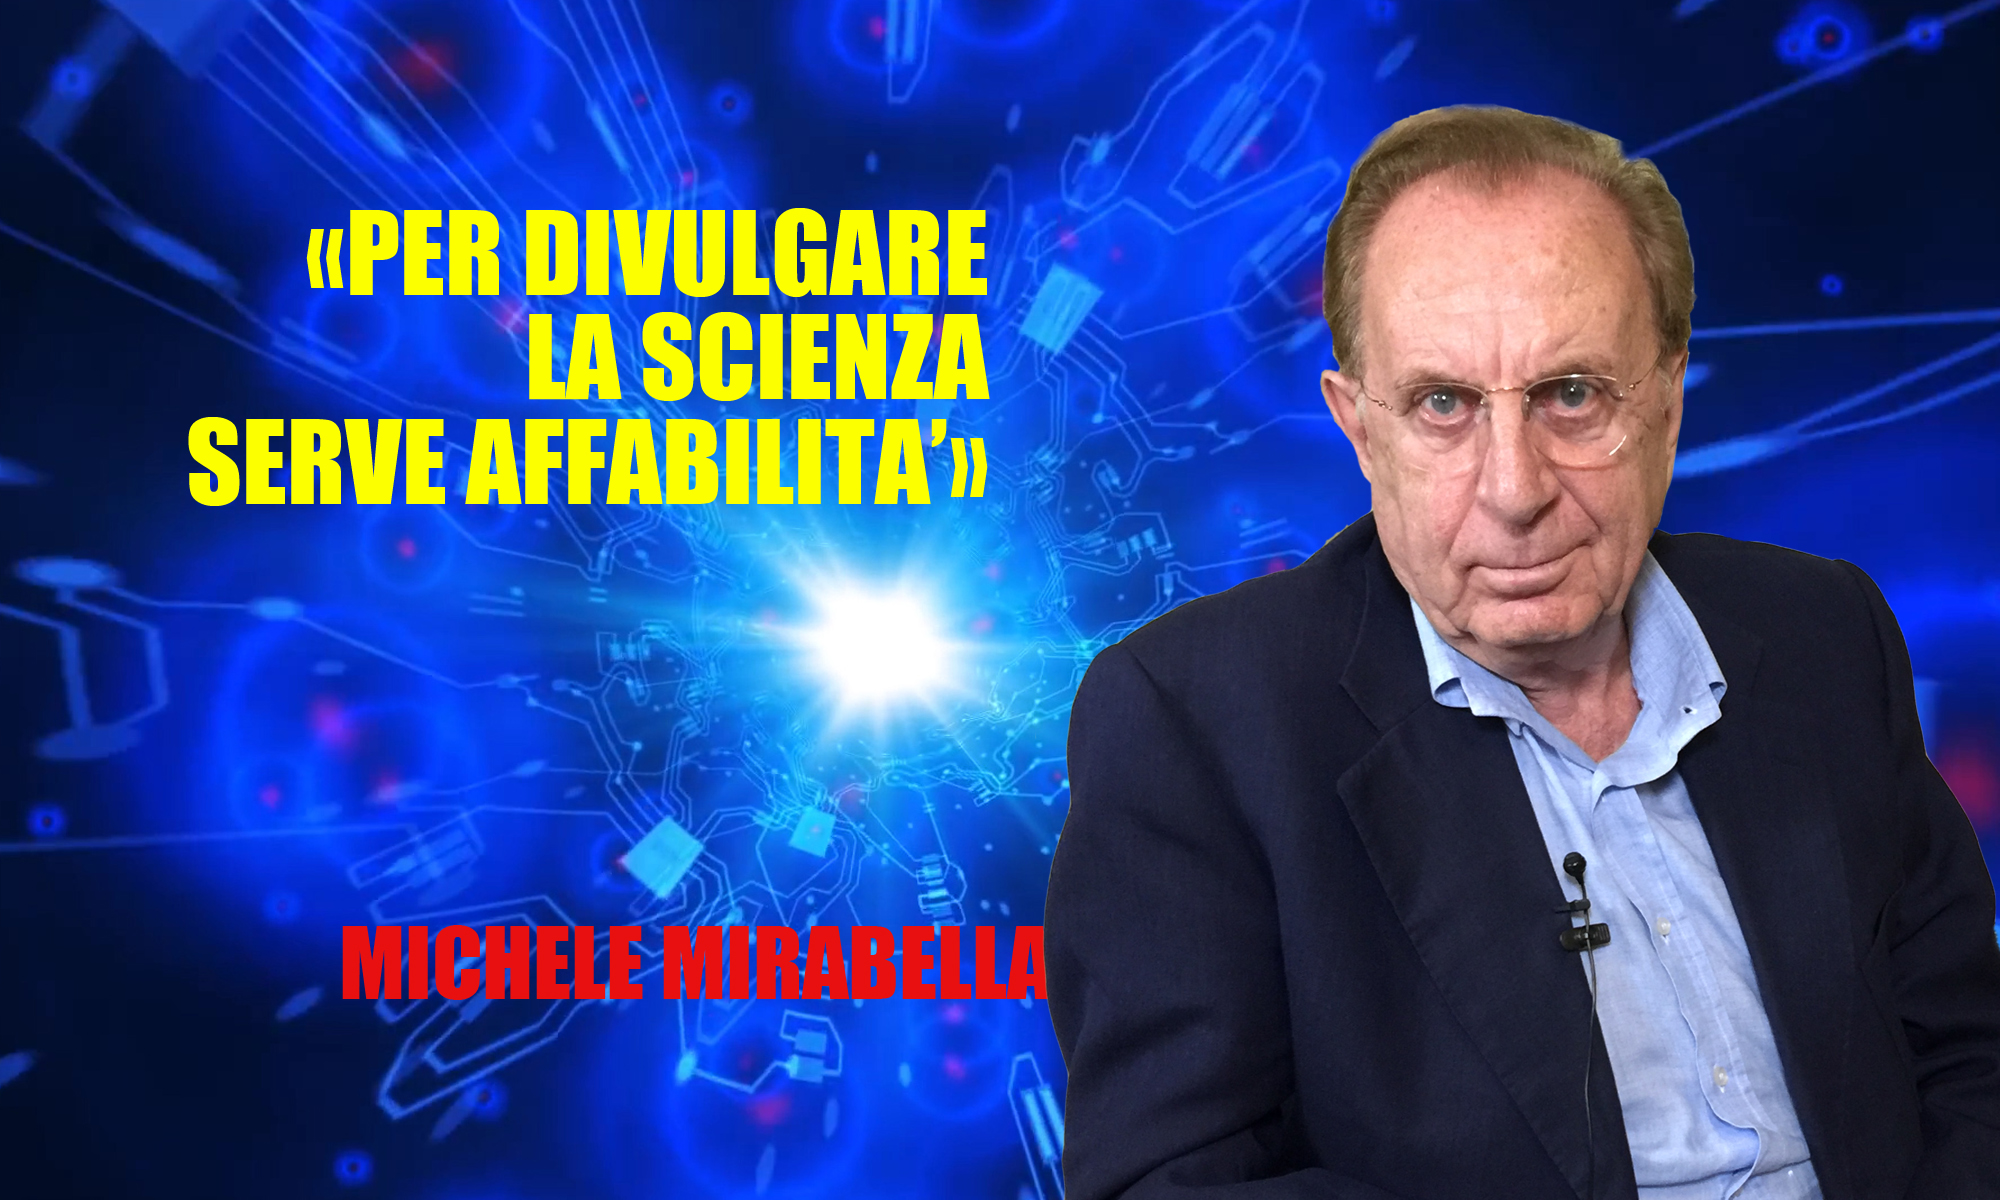 Michele Mirabella: «Per divulgare la scienza serve affabilità»